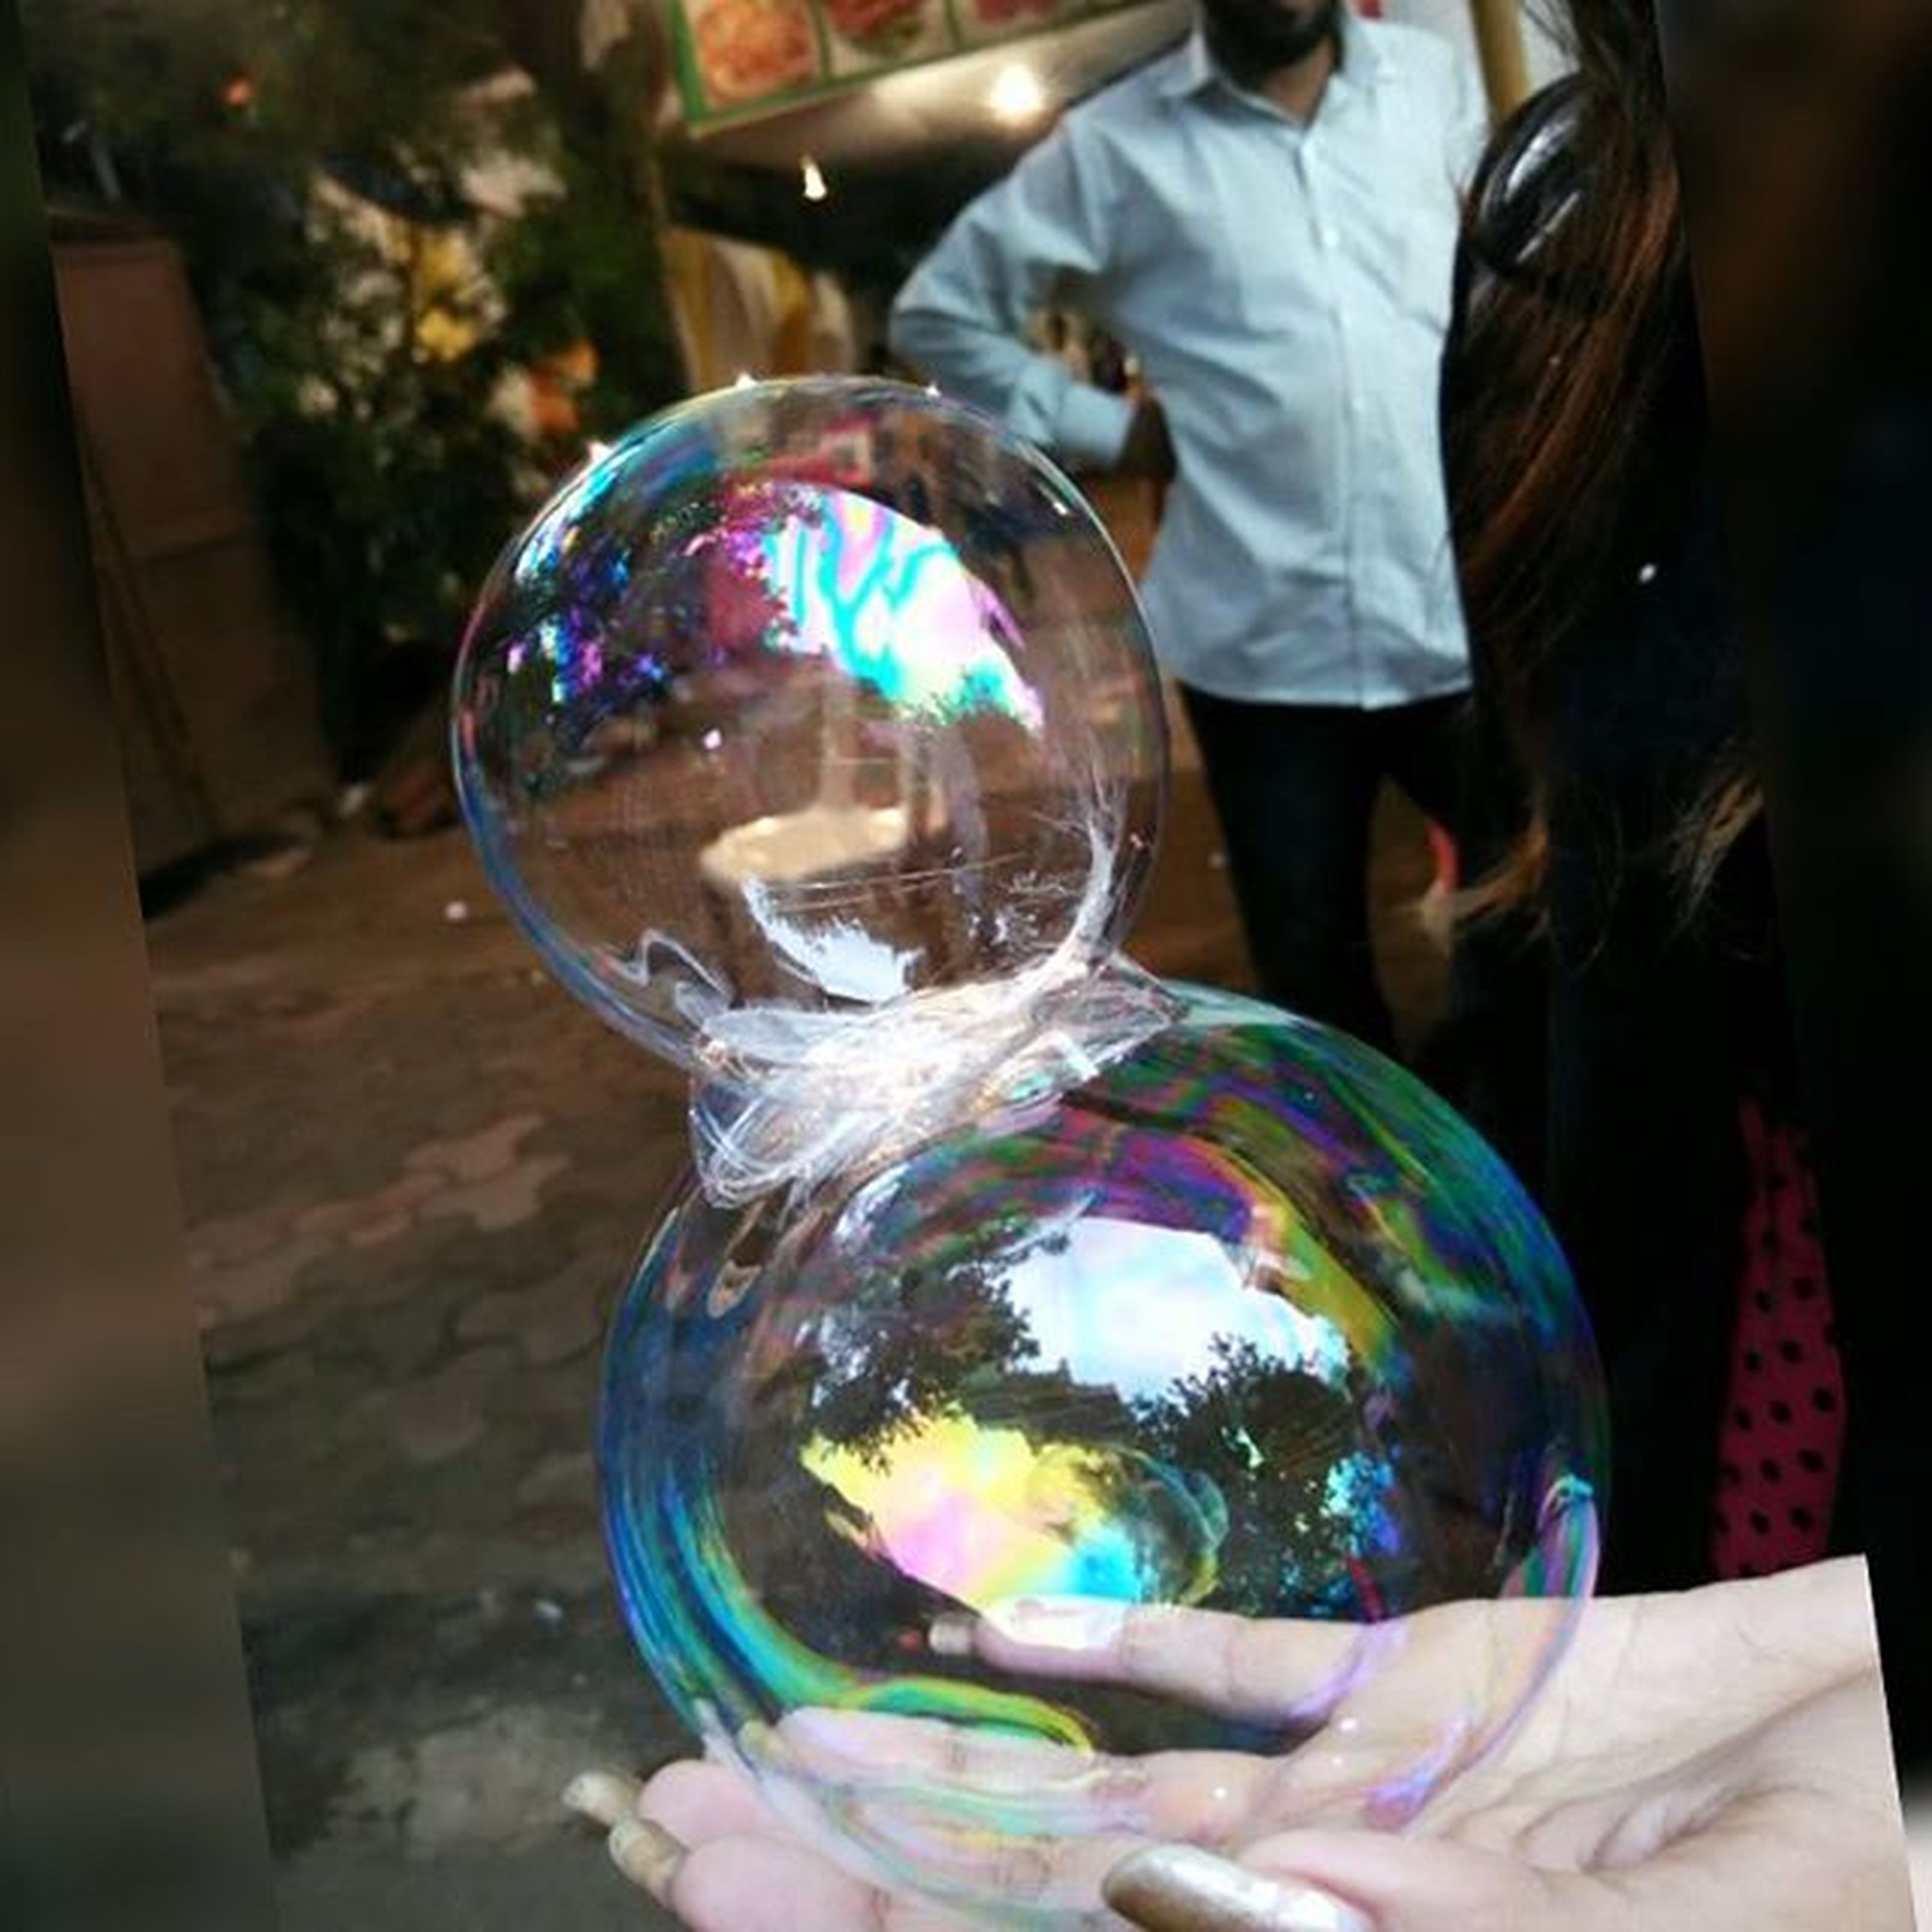 lifestyles, leisure activity, focus on foreground, bubble, unrecognizable person, multi colored, person, holding, men, motion, sphere, rear view, close-up, standing, part of, incidental people